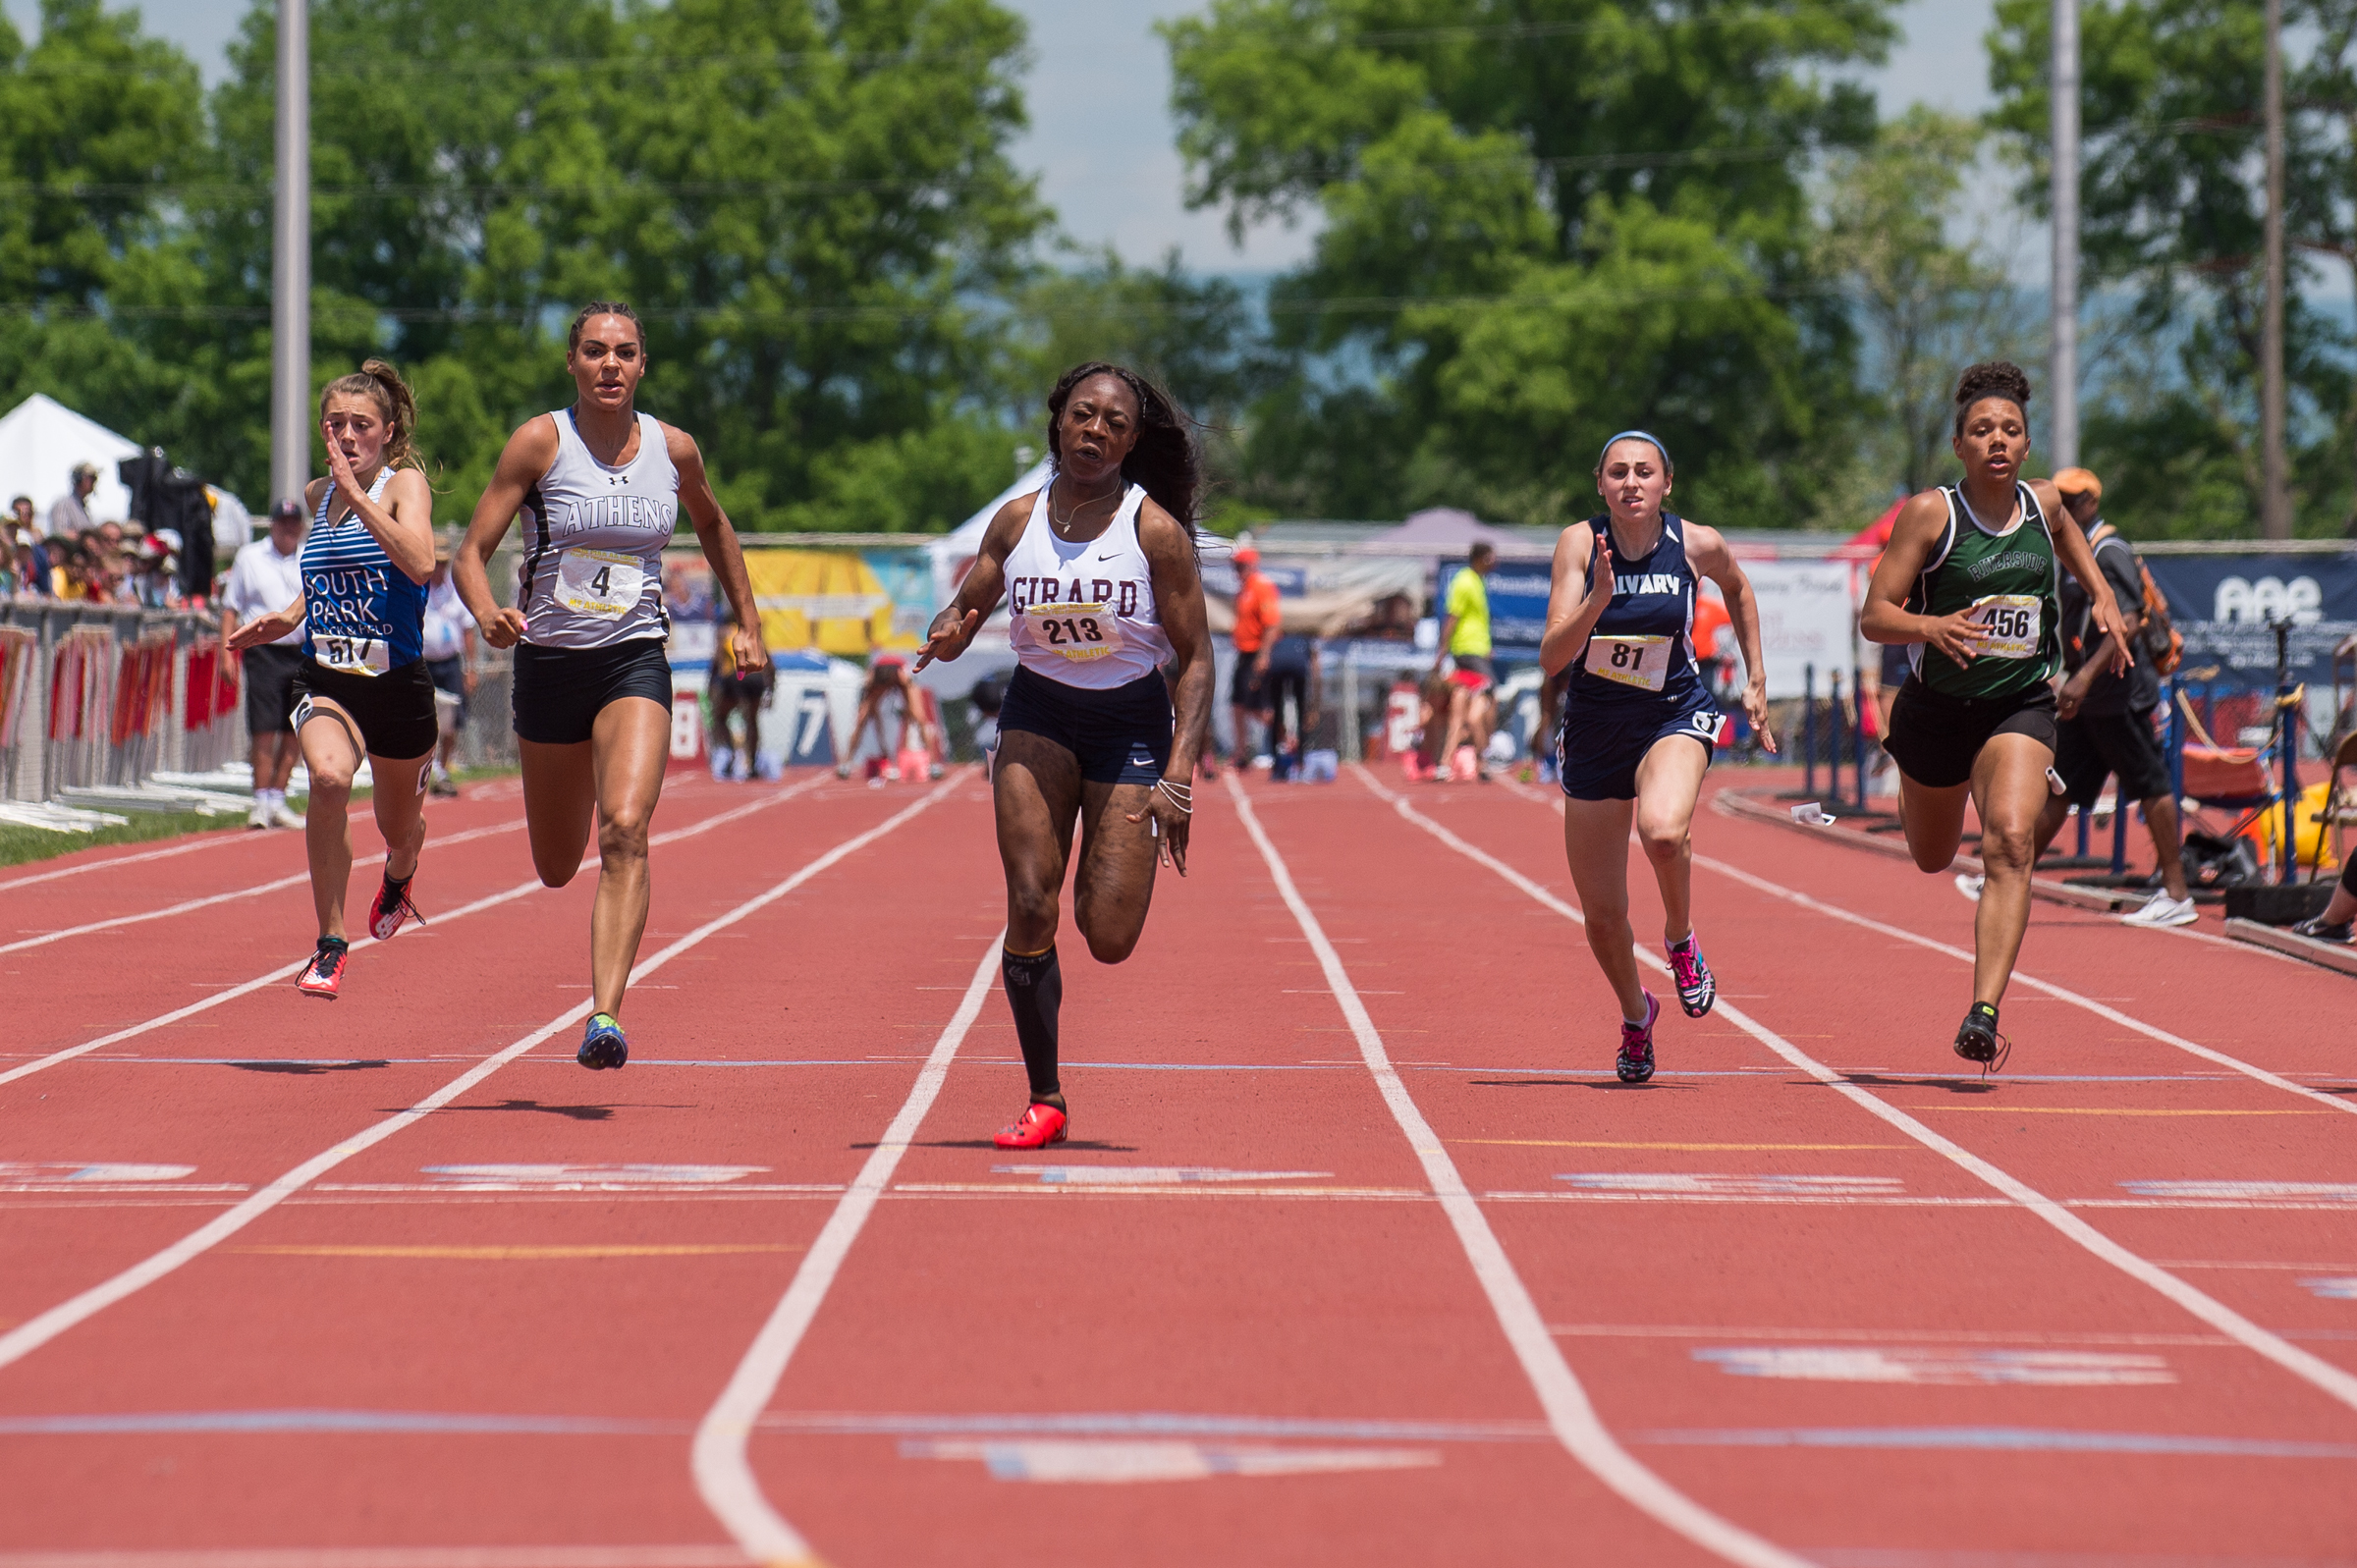 Thelma Davies of Girard College competes in the 2A 100 dash.